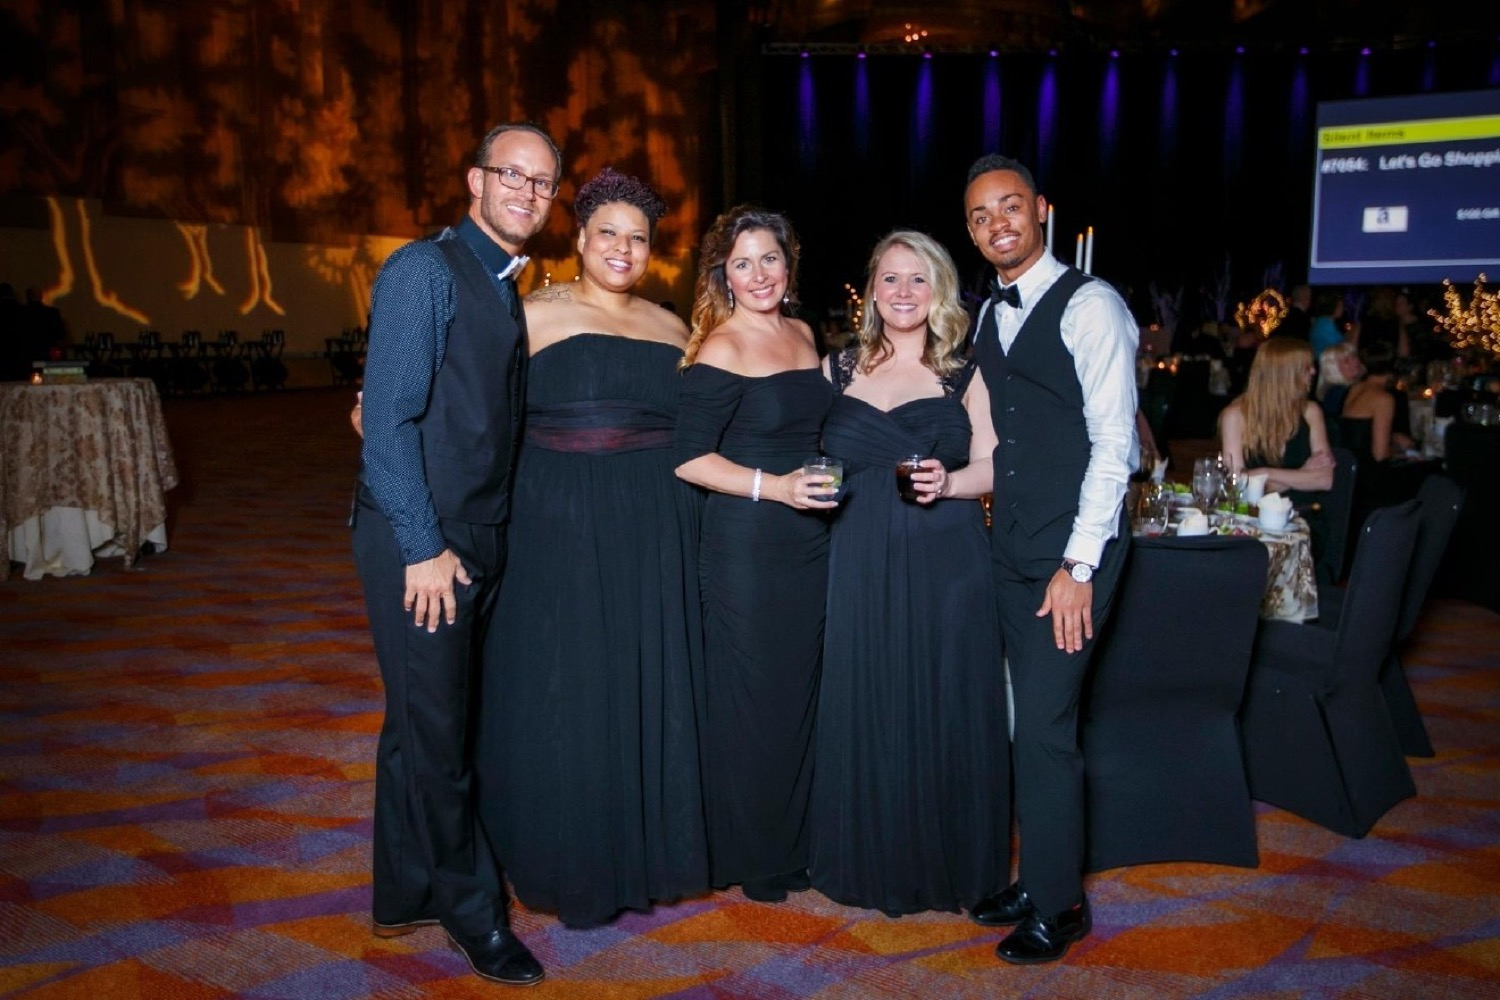 The 2017 JDRF Cincinnatian of the Year Gala is the toast of the town every year, and for good reason. It will be held May 13, 2017 at the Duke Energy Convention Center. / Image courtesy of JDRF Southwest Ohio